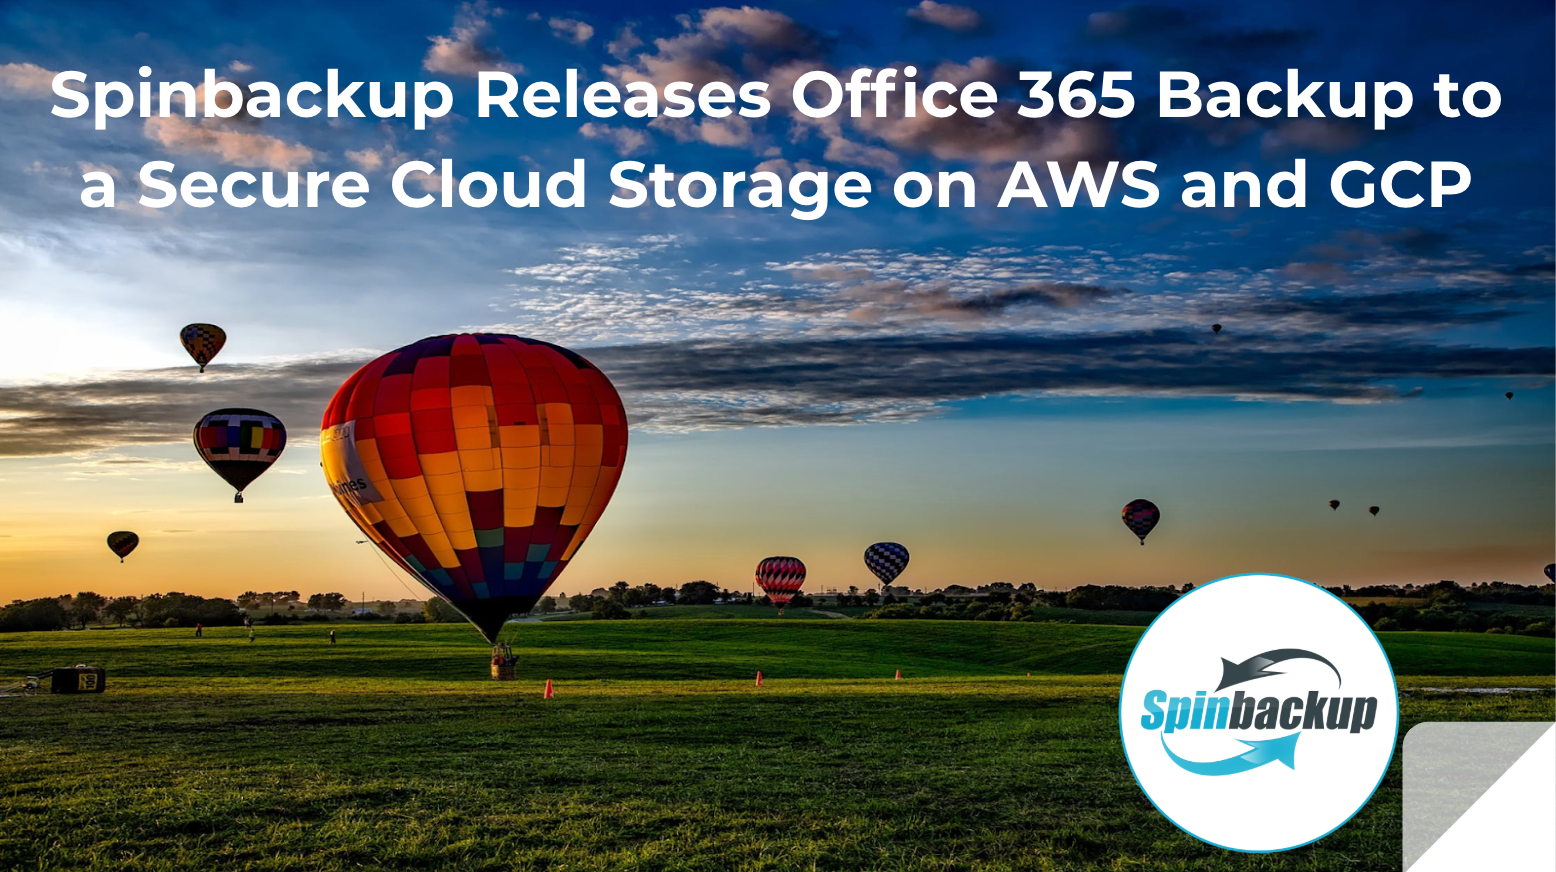 Spinbackup Releases Office 365 Backup to a Secure Cloud Storage on AWS and GCP